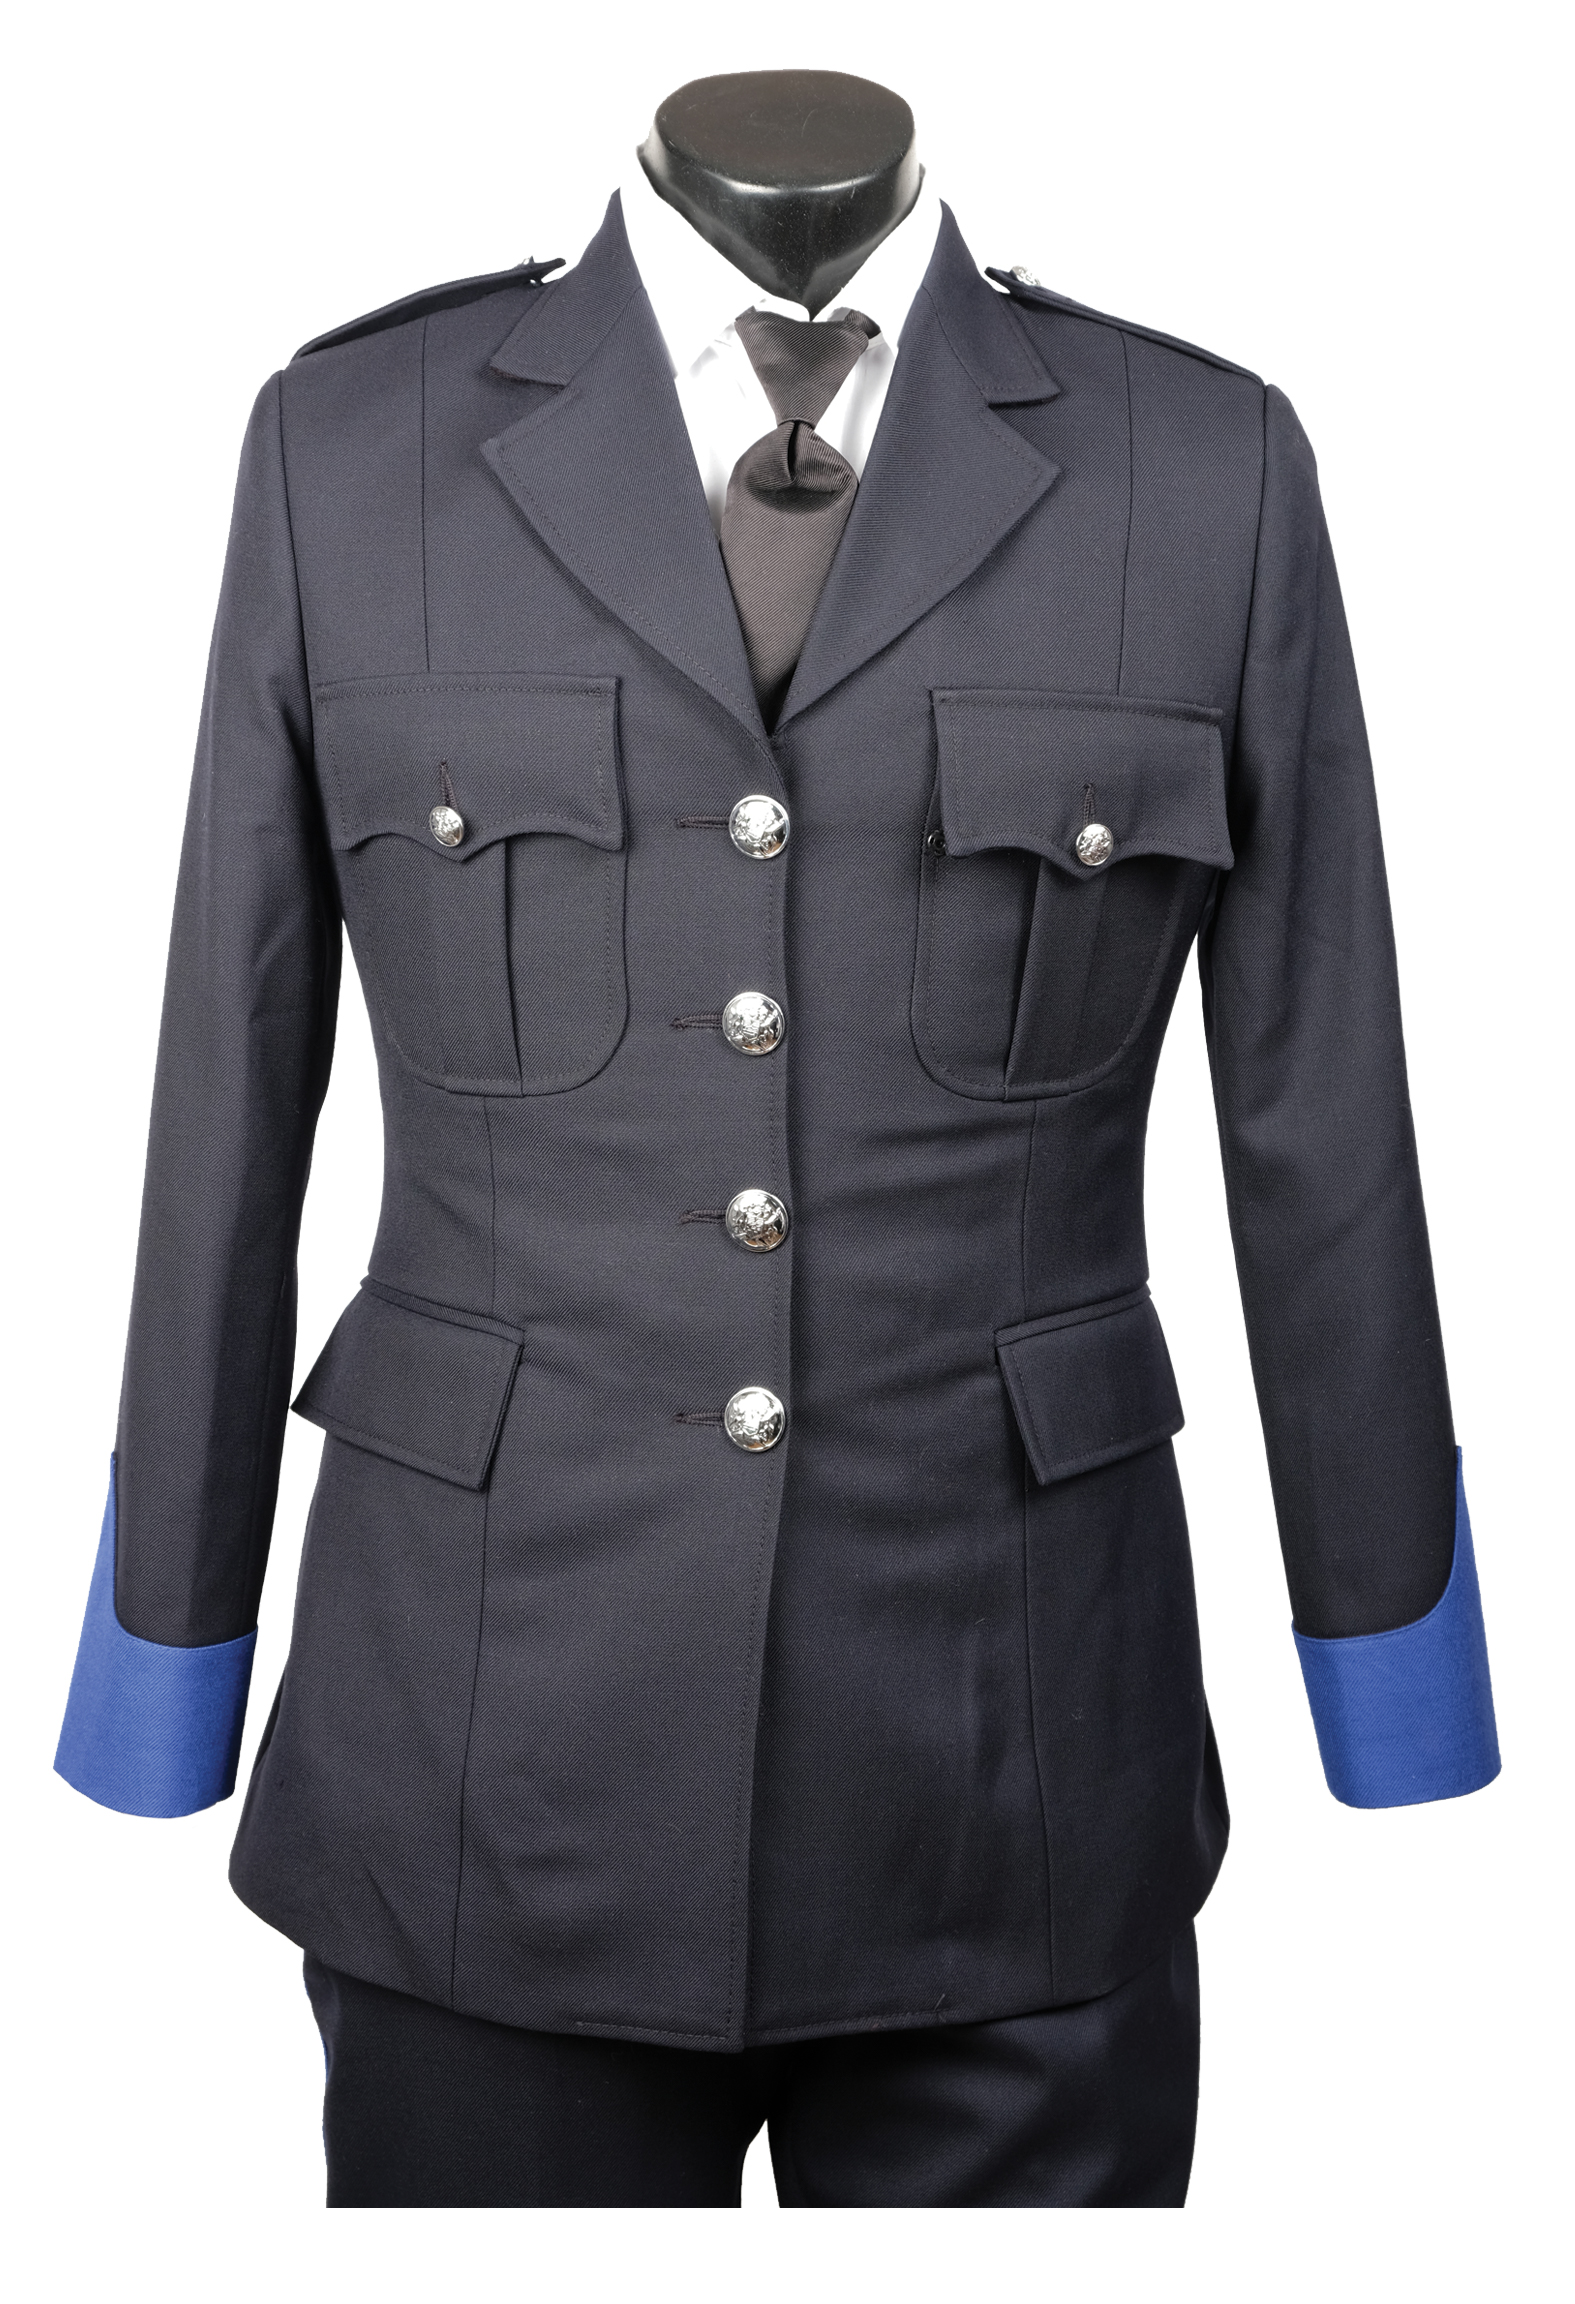 Custom Working Tunic With Pants-Derks Uniforms